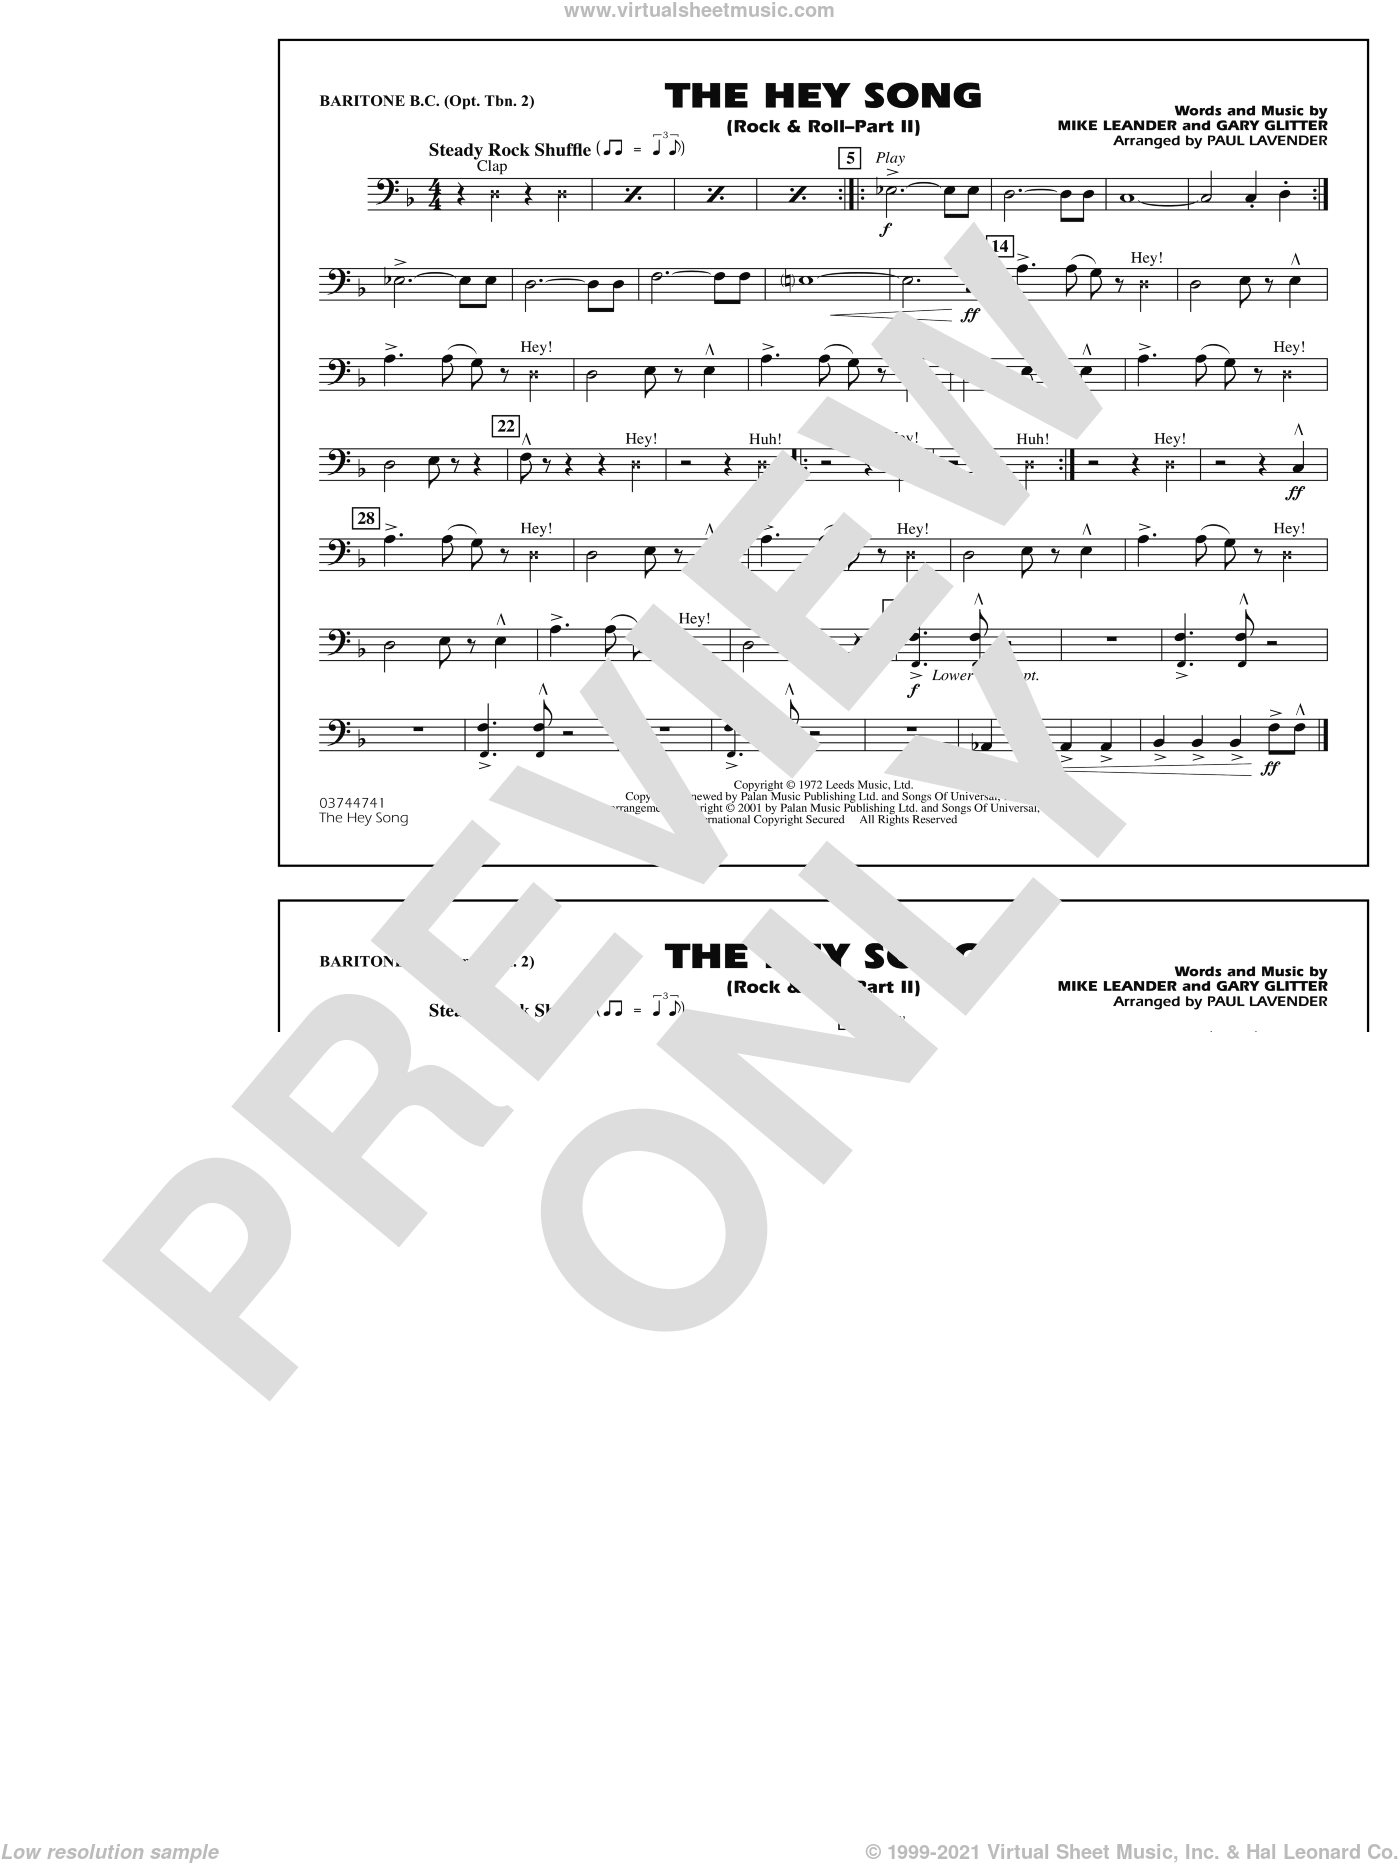 Rock and Roll, part ii (the hey song) sheet music for marching band (baritone b.c., opt. tbn. 2) by Paul Lavender, Mike Leander and Gary Glitter, intermediate skill level